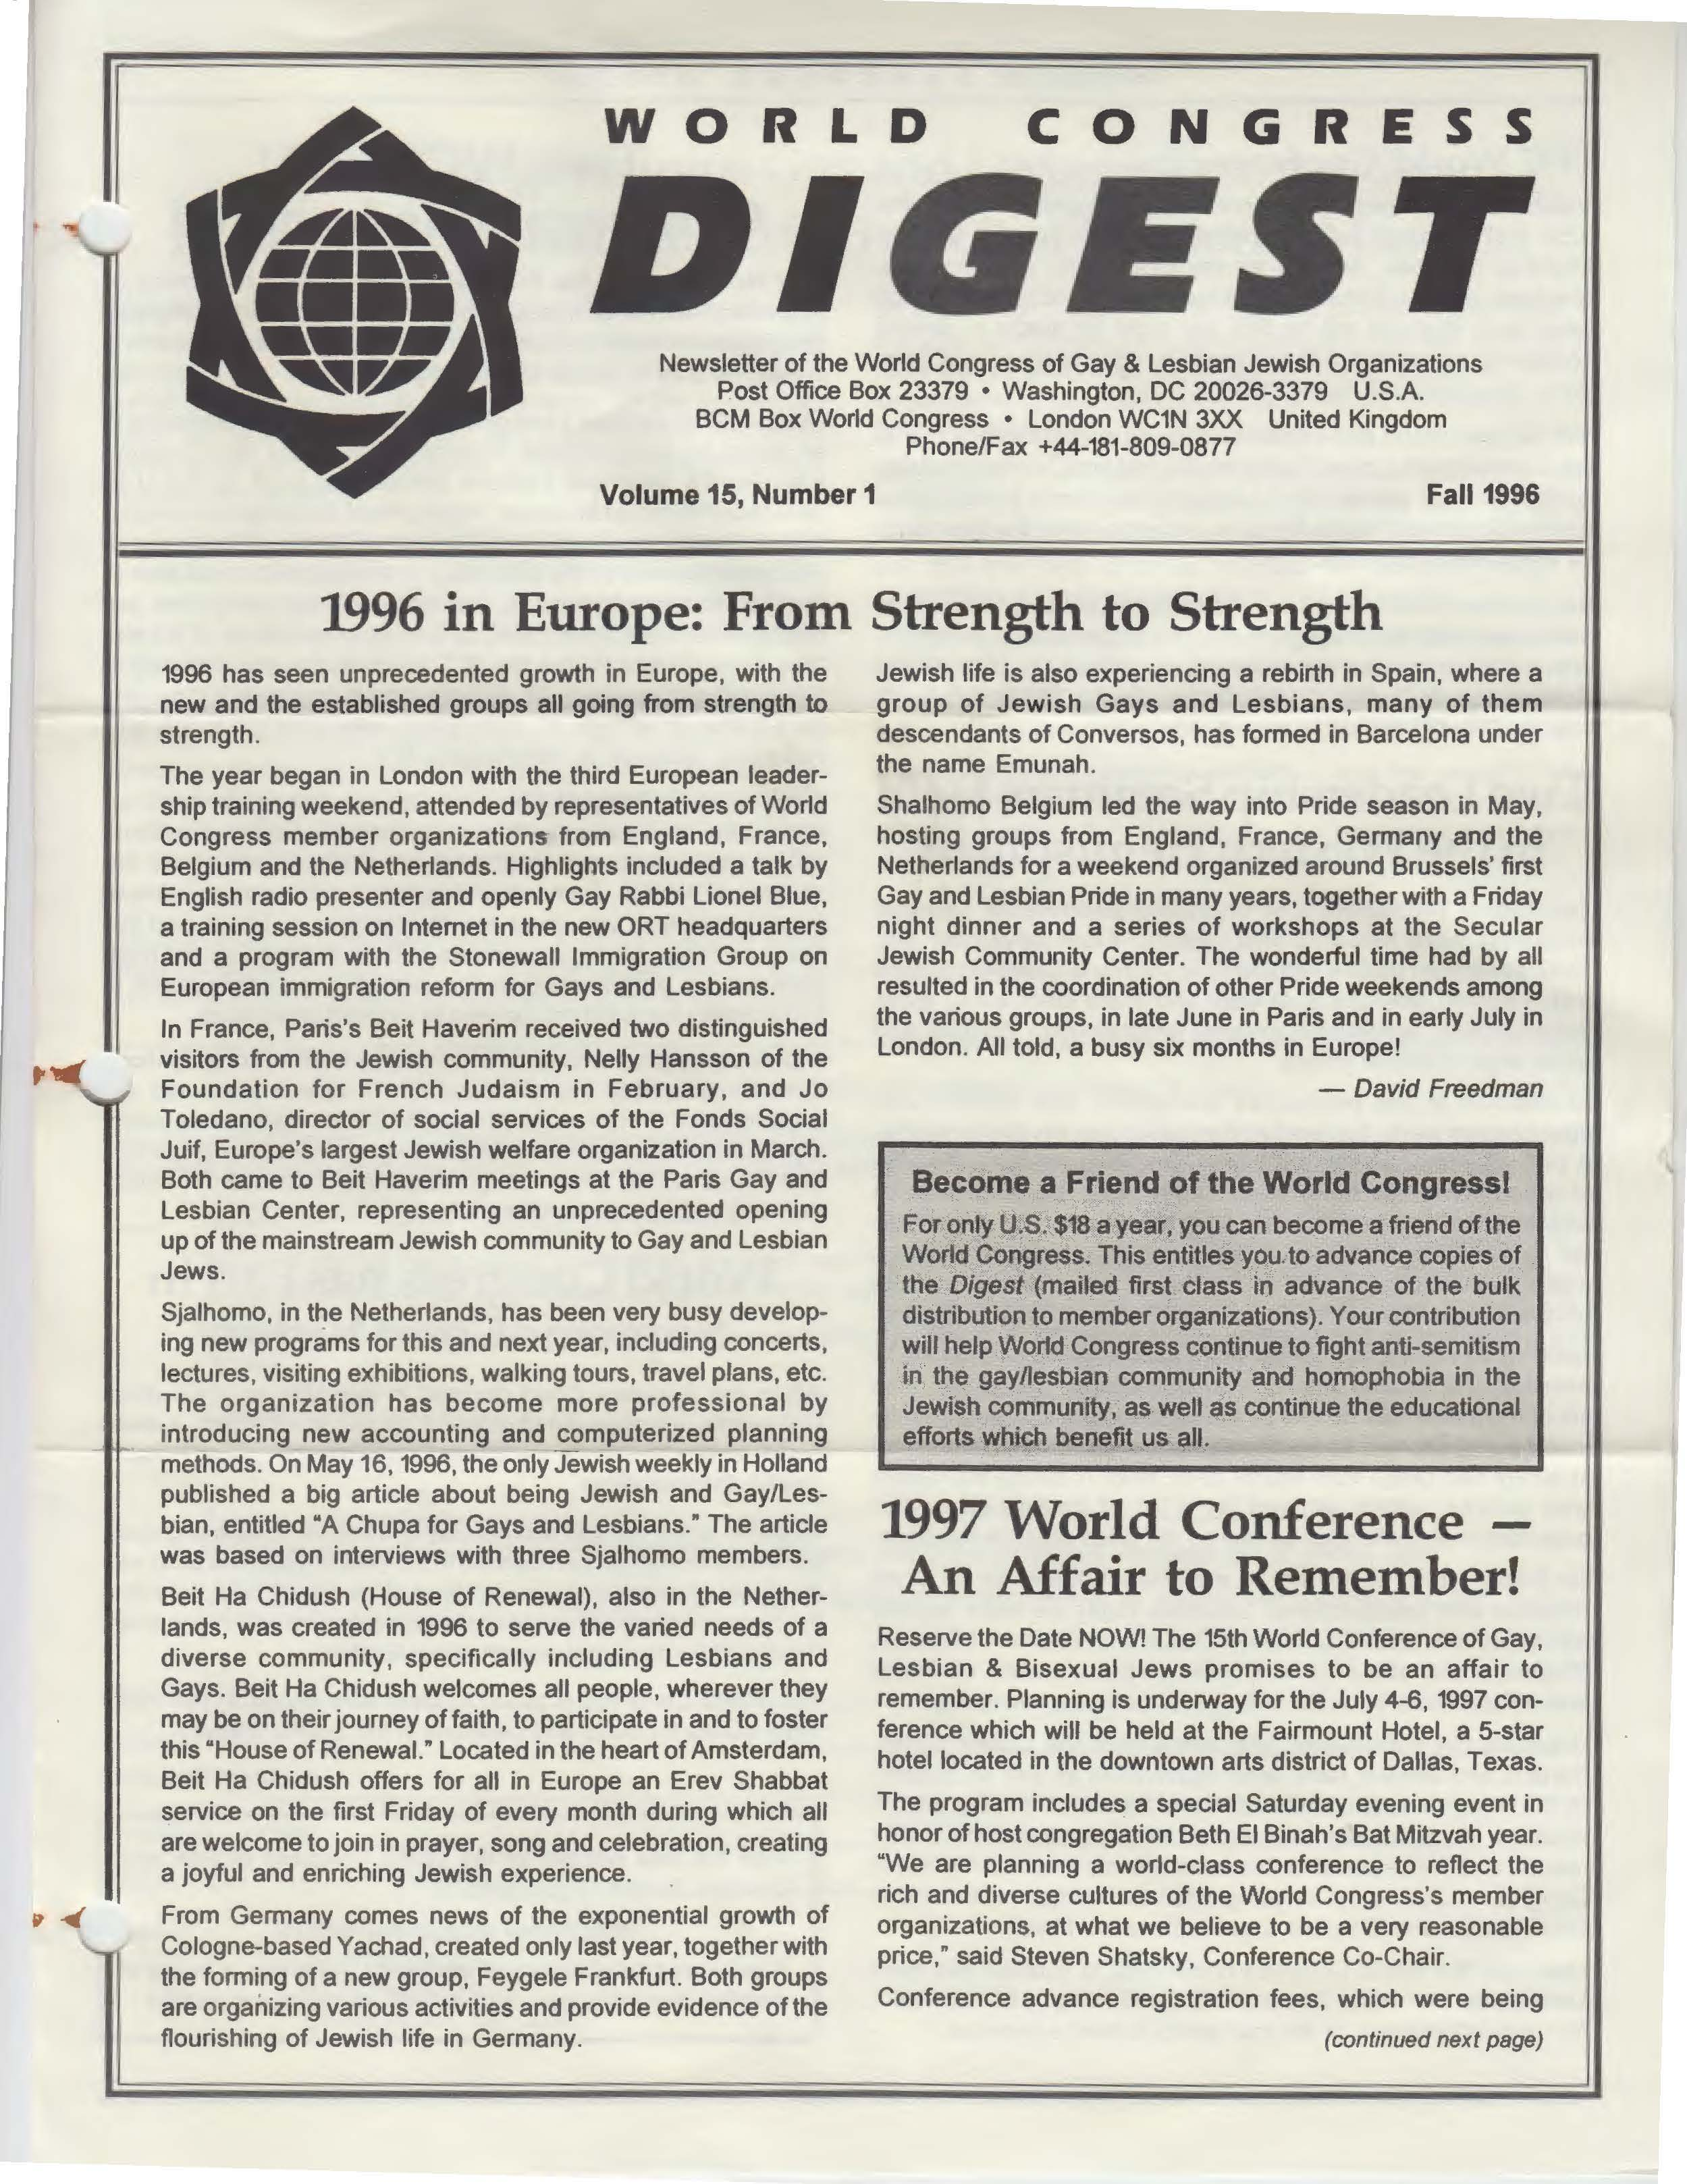 World Congress Digest Fall 1996